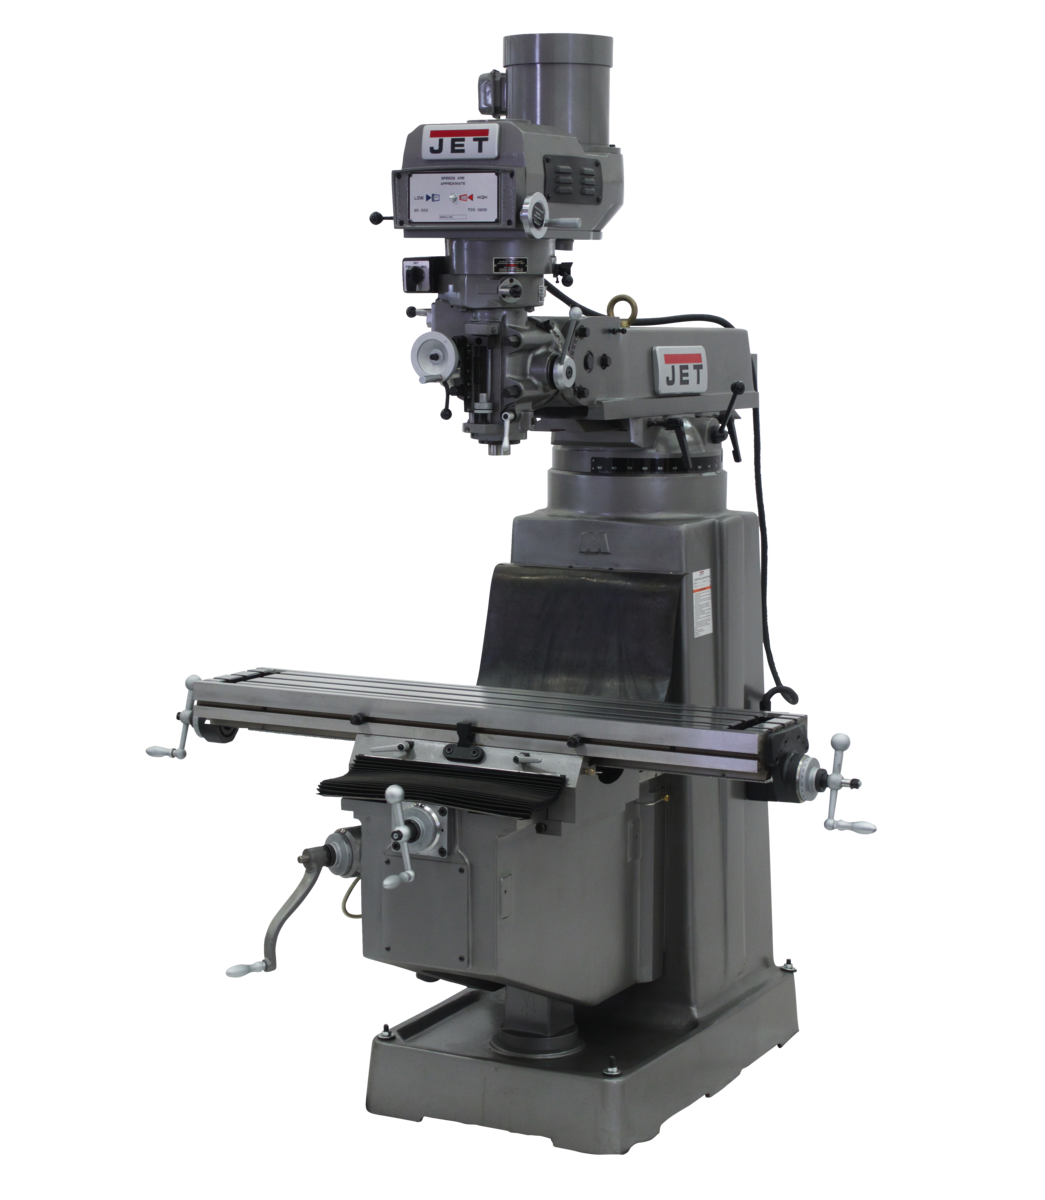 JTM-1050VS2 Mill With 3-Axis Newall DP700 DRO (Knee)